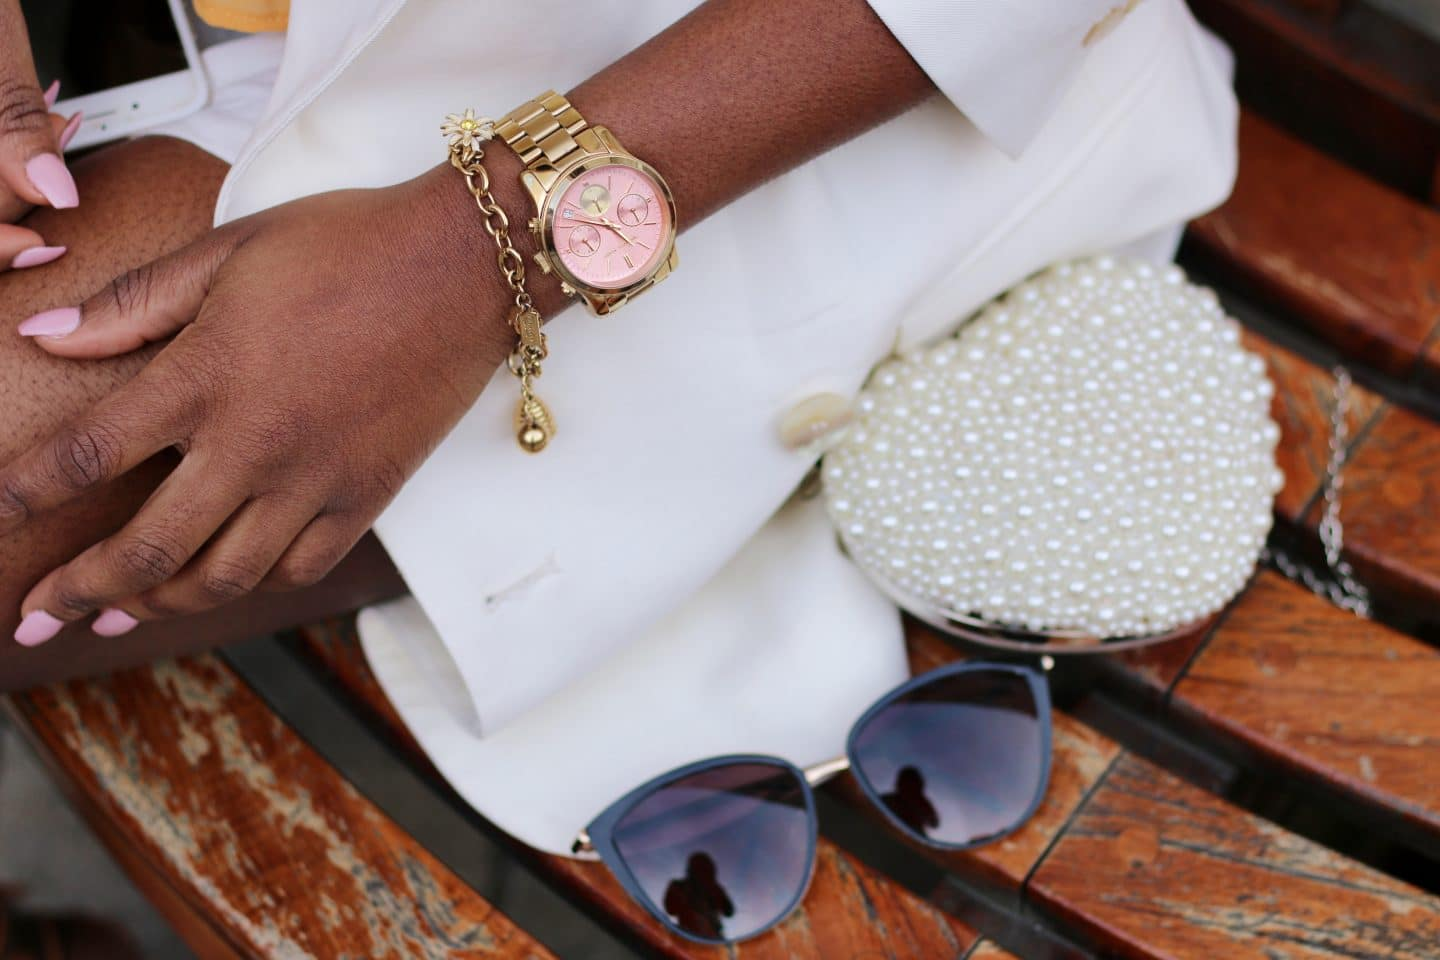 4 REASONS WHY A WHITE BLAZER IS THE PERFECT SUMMER OUTERWEAR